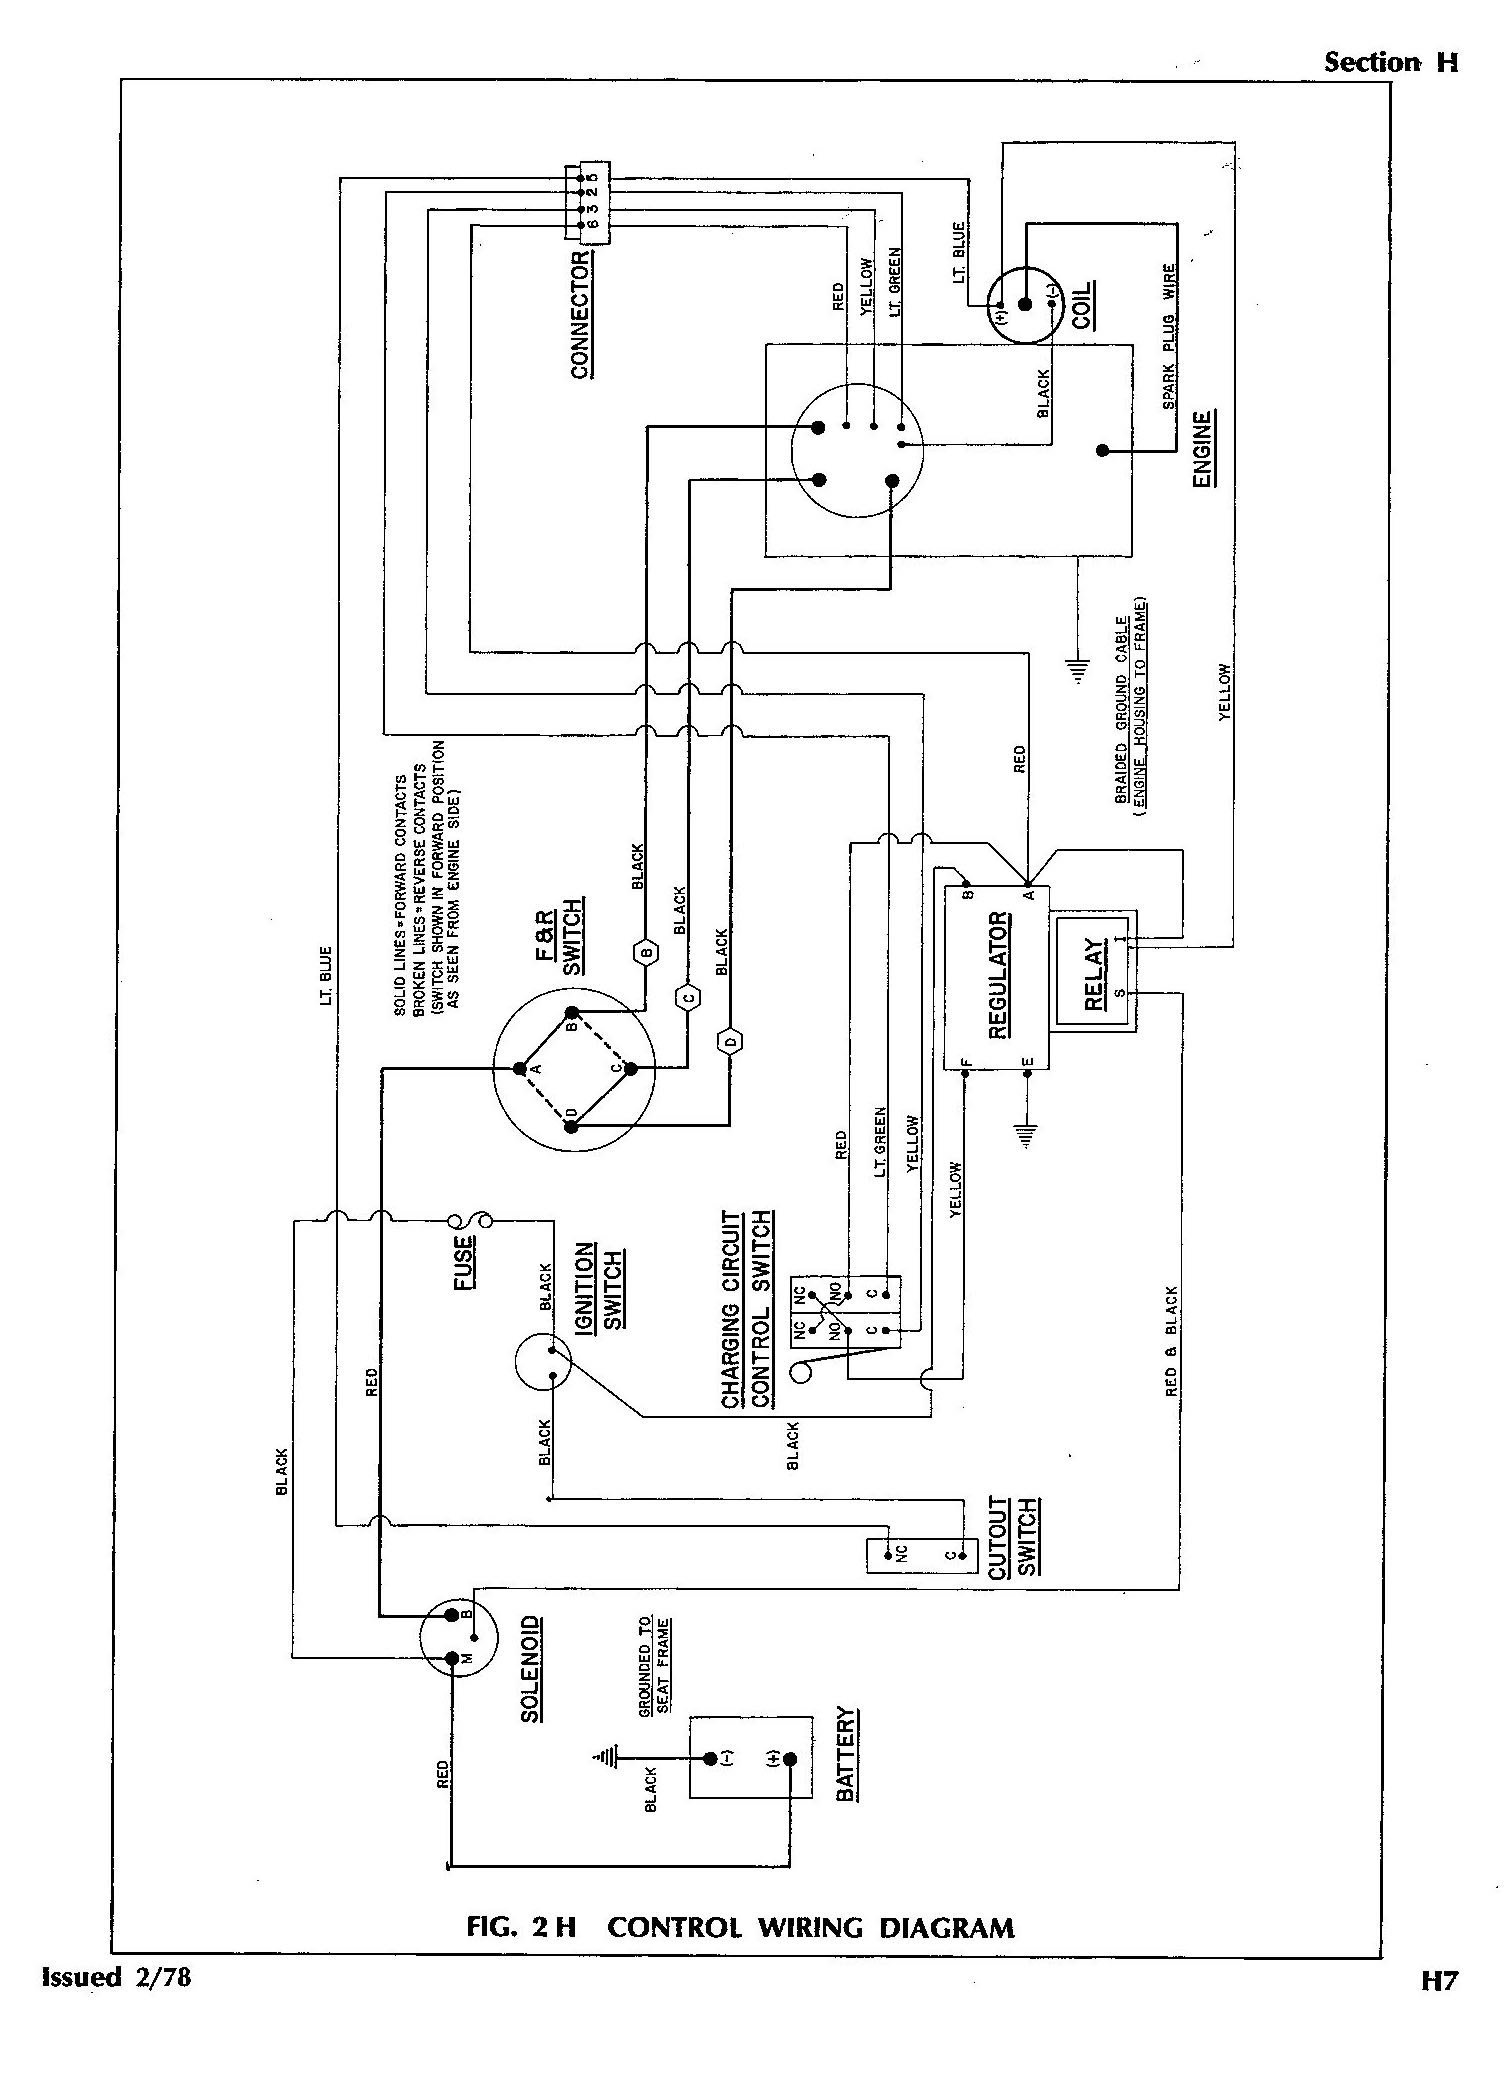 System Interface Diagram Automotive